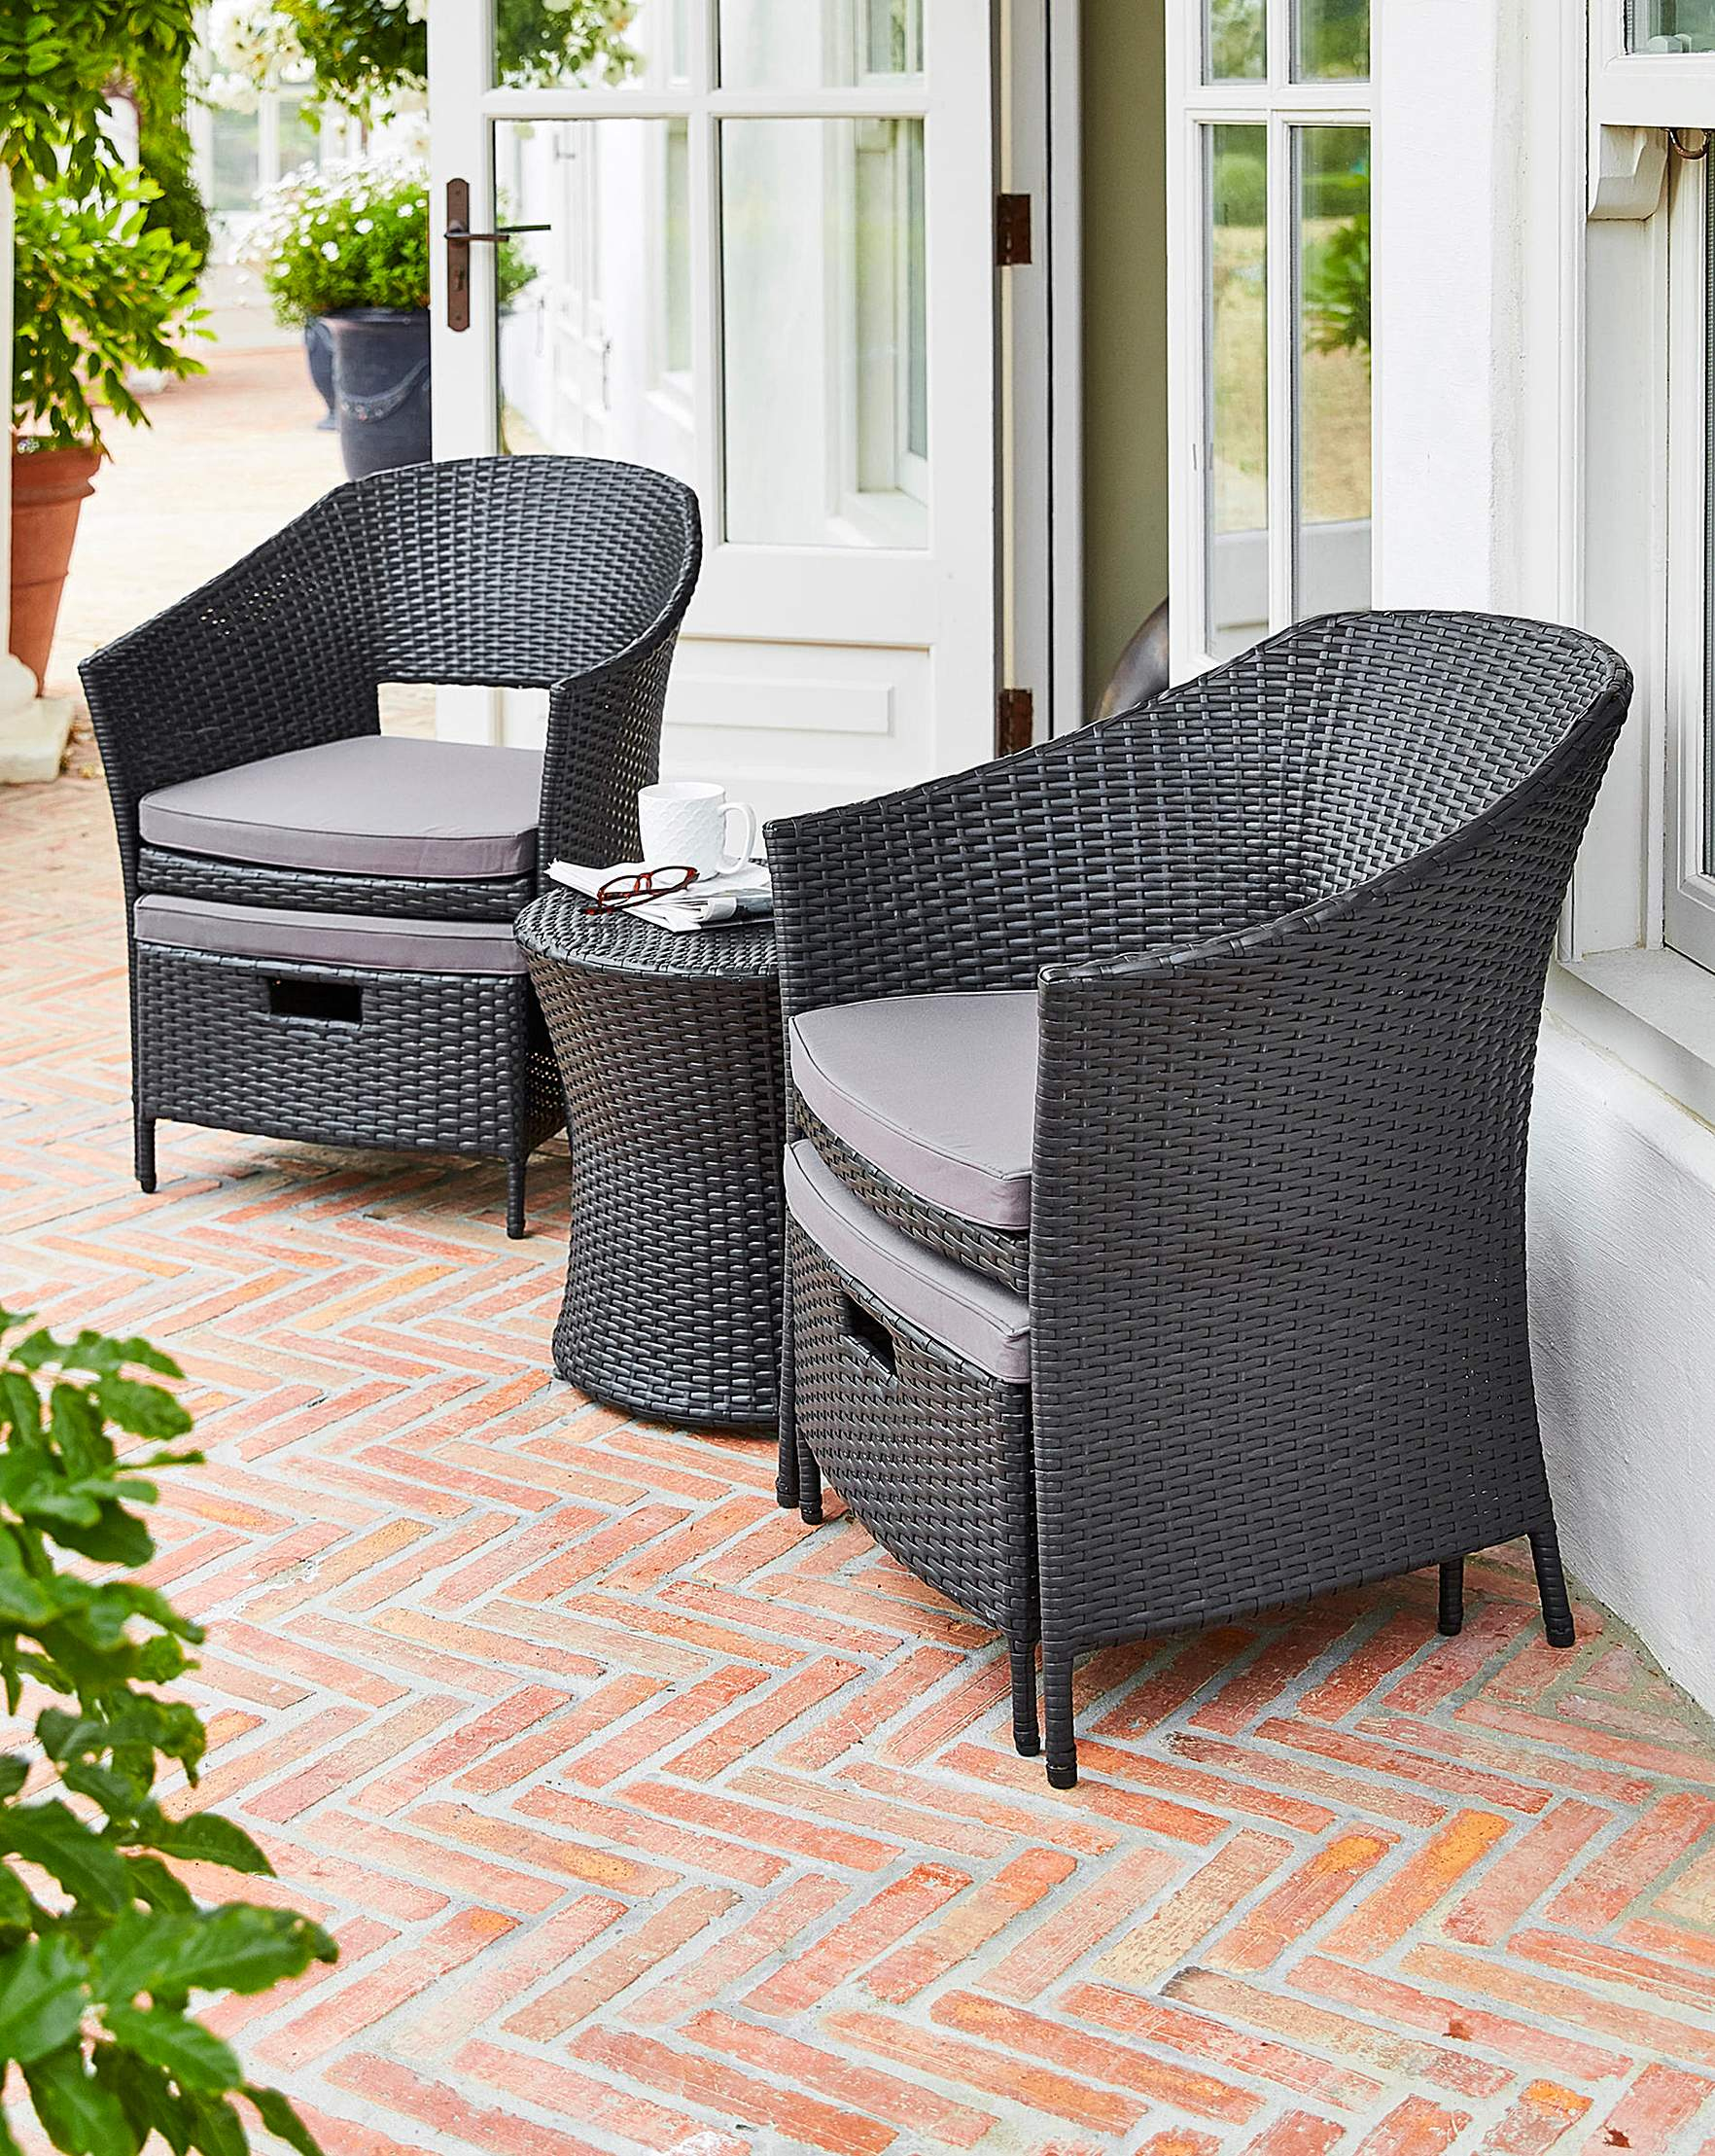 Rattan Egg Chair Set Hereford 5 Piece Rattan Egg Bistro Set